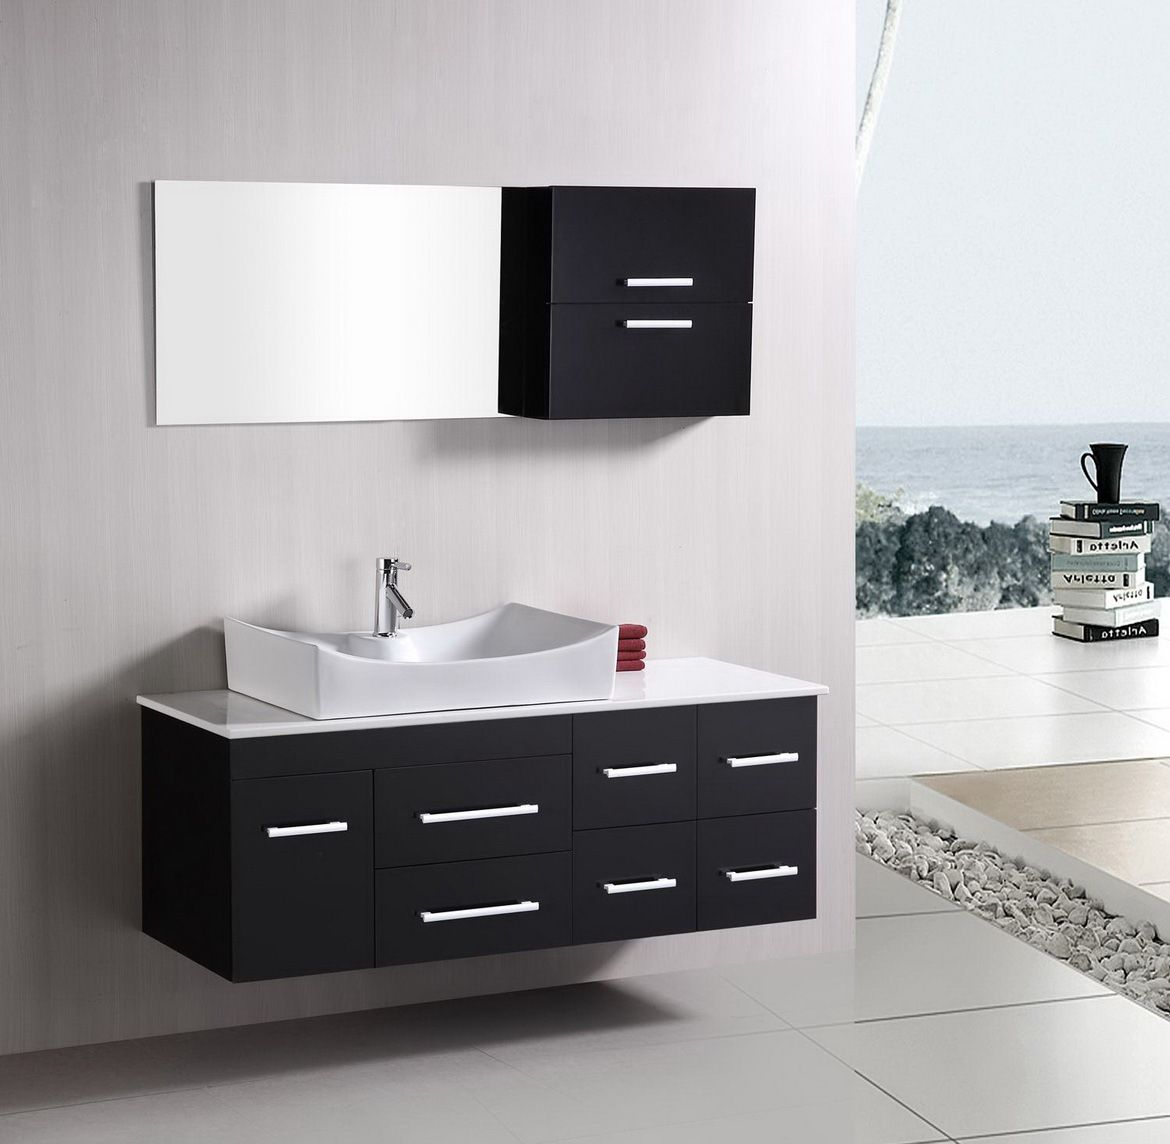 Bathroom Sinks And Vanities Of Small Contemporary Bathroom Vanities Design Ideas For